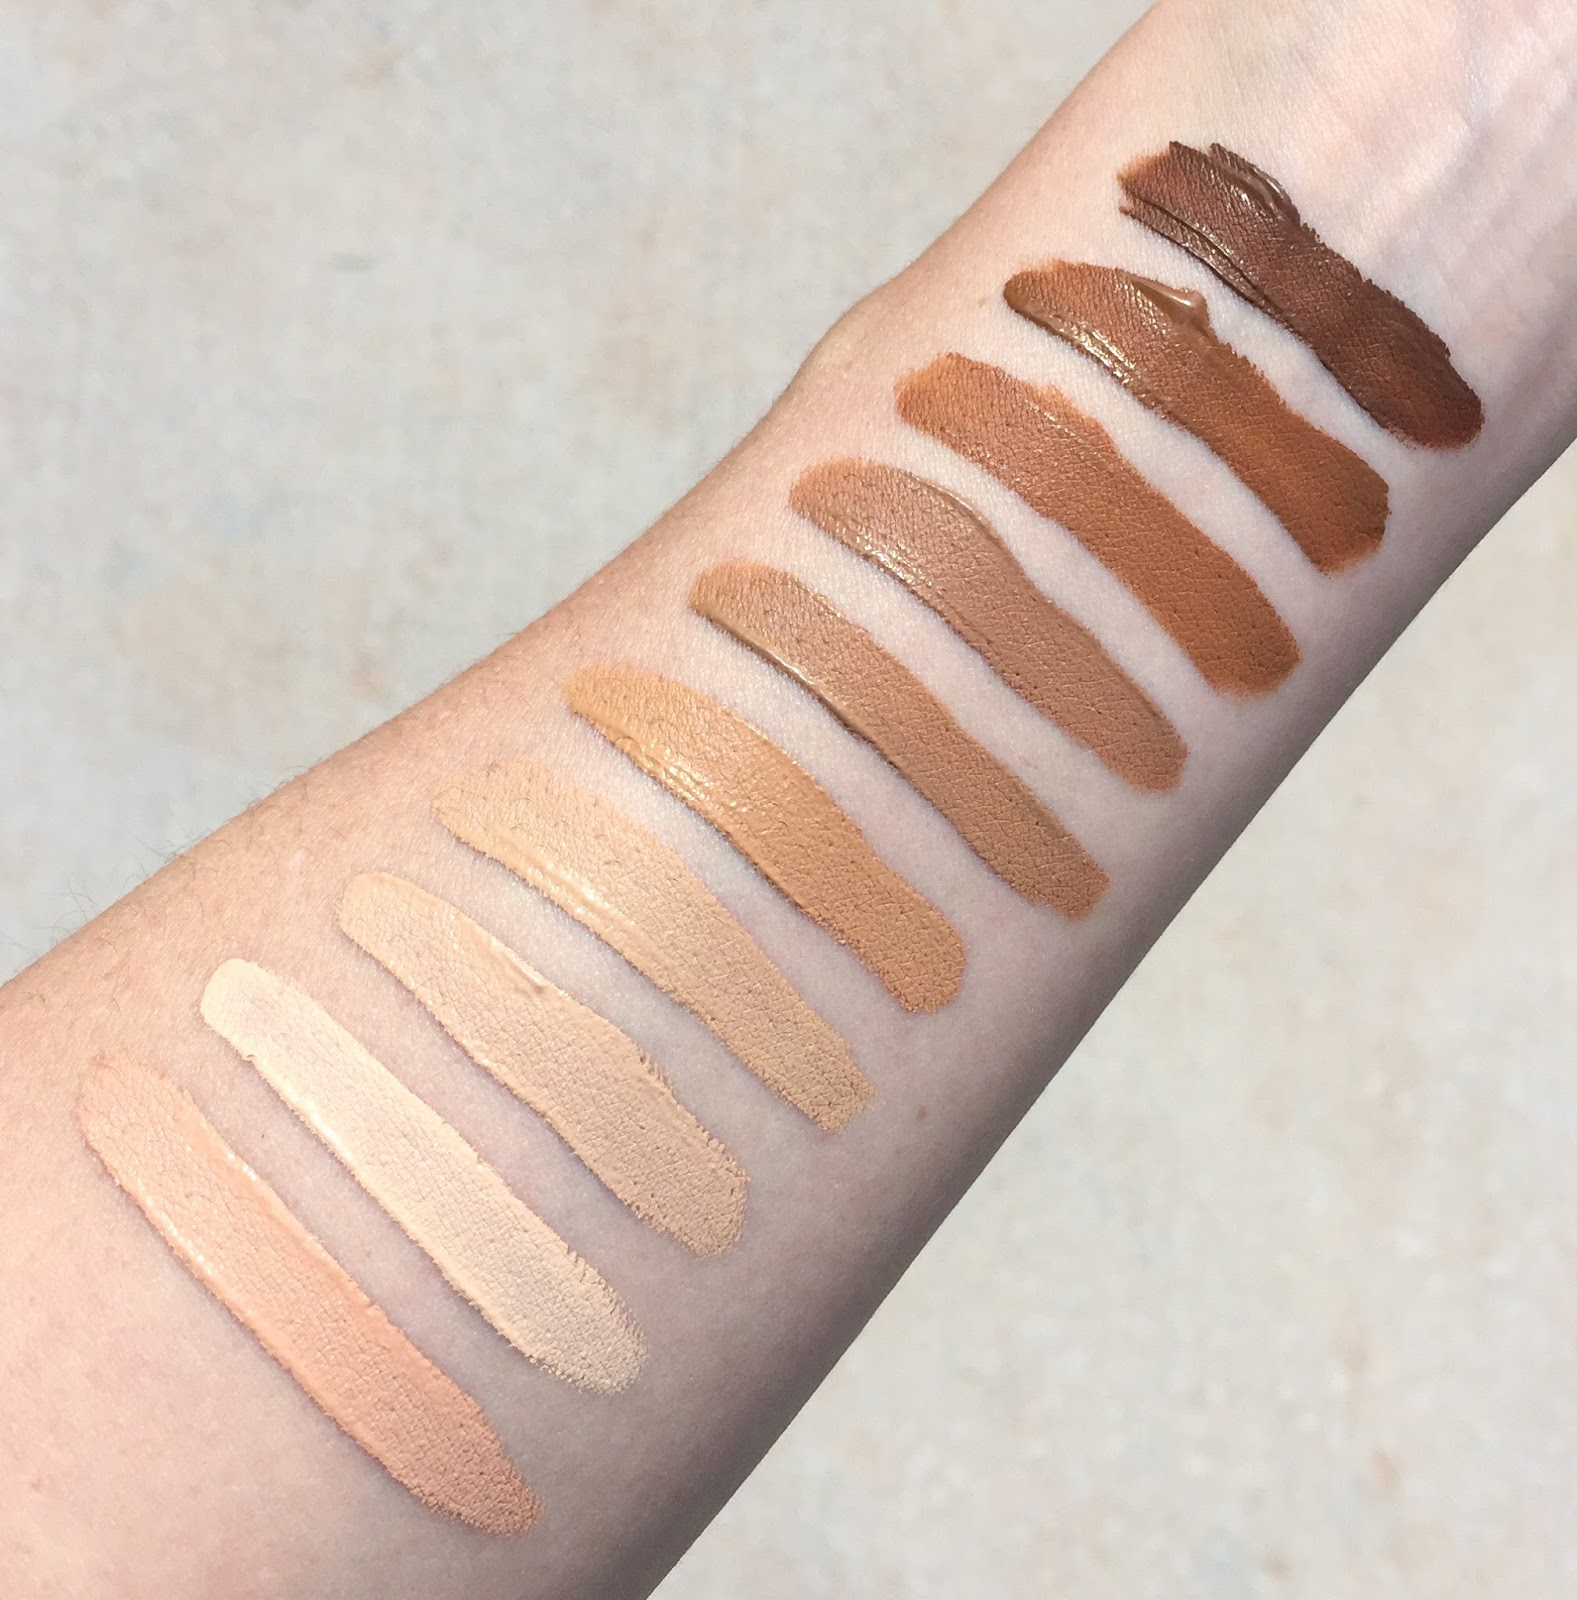 Review of the Kevyn Aucoin Etherealist Super Natural Concealers with swatches of all shades.